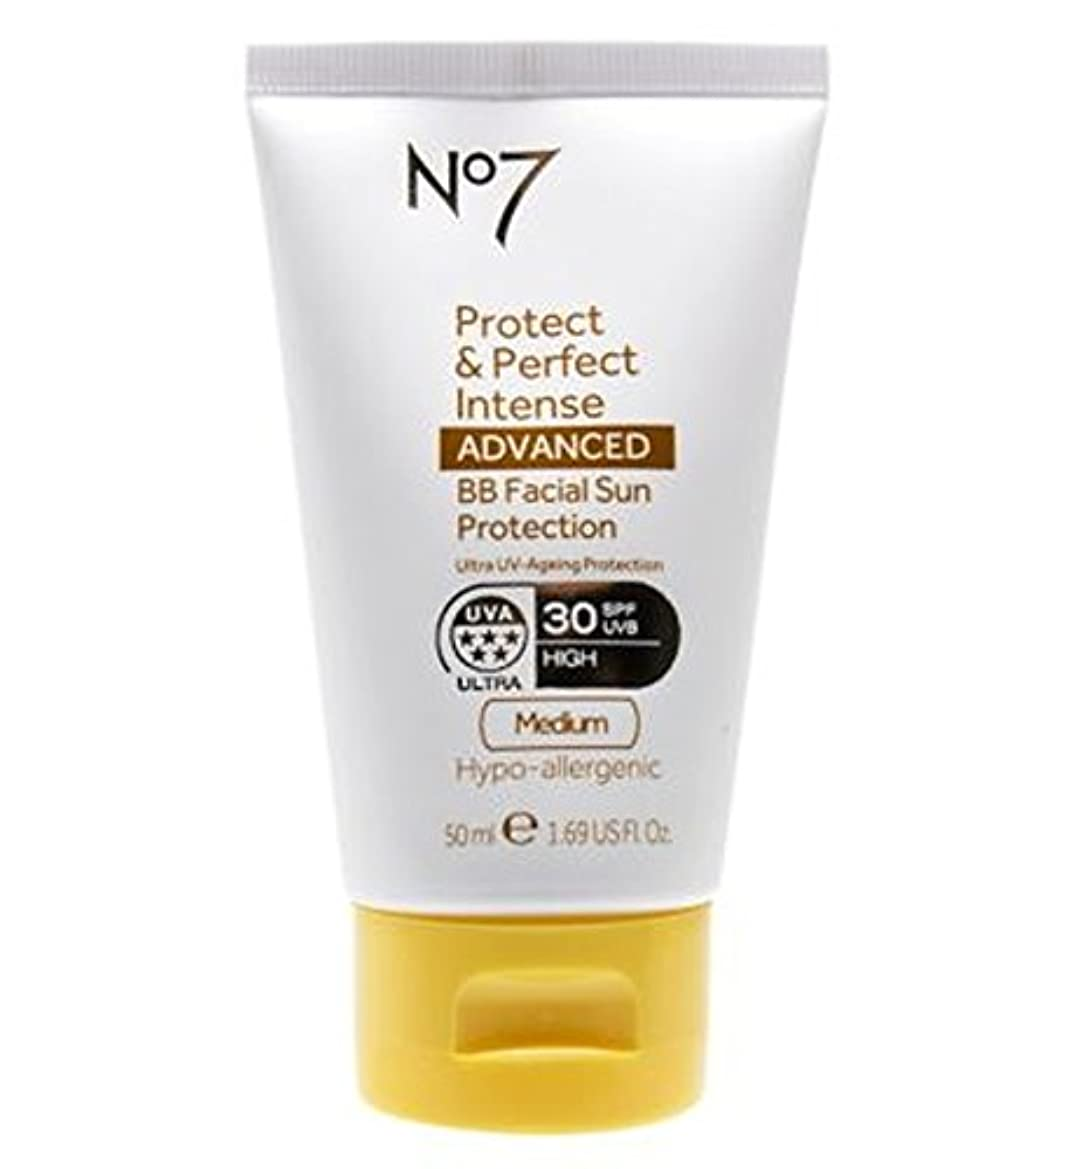 植木いっぱい自分のNo7 Protect & Perfect Intense ADVANCED BB Facial Sun Protection SPF30 Medium 50ml - No7保護&完璧な強烈な先進Bb顔の日焼け防止Spf30...